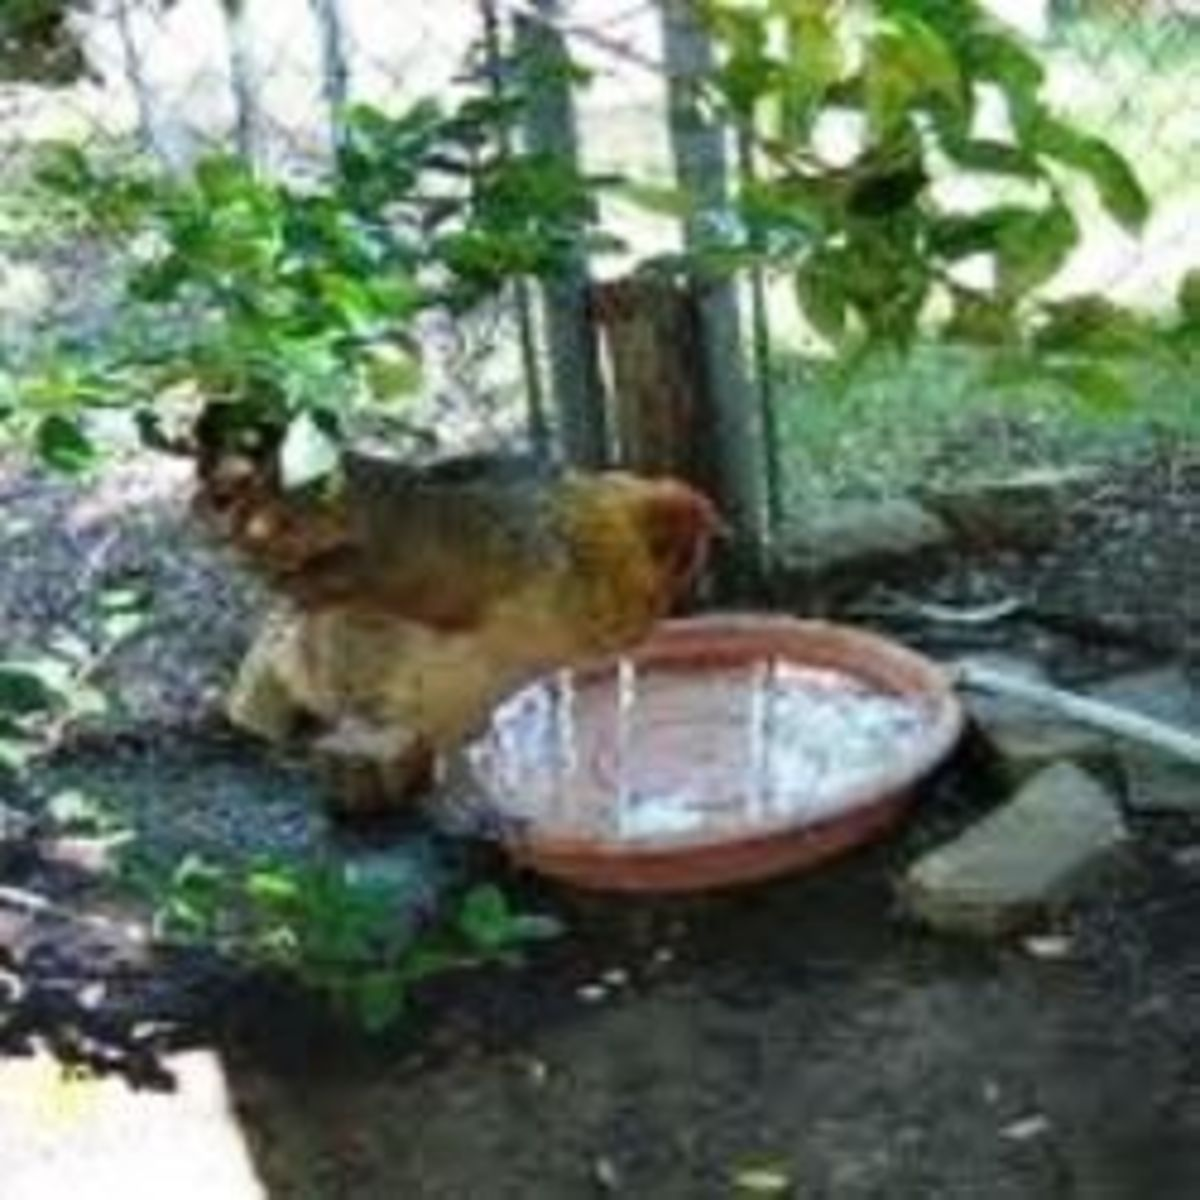 Help your hens stay cool in the summer by providing wading pools.